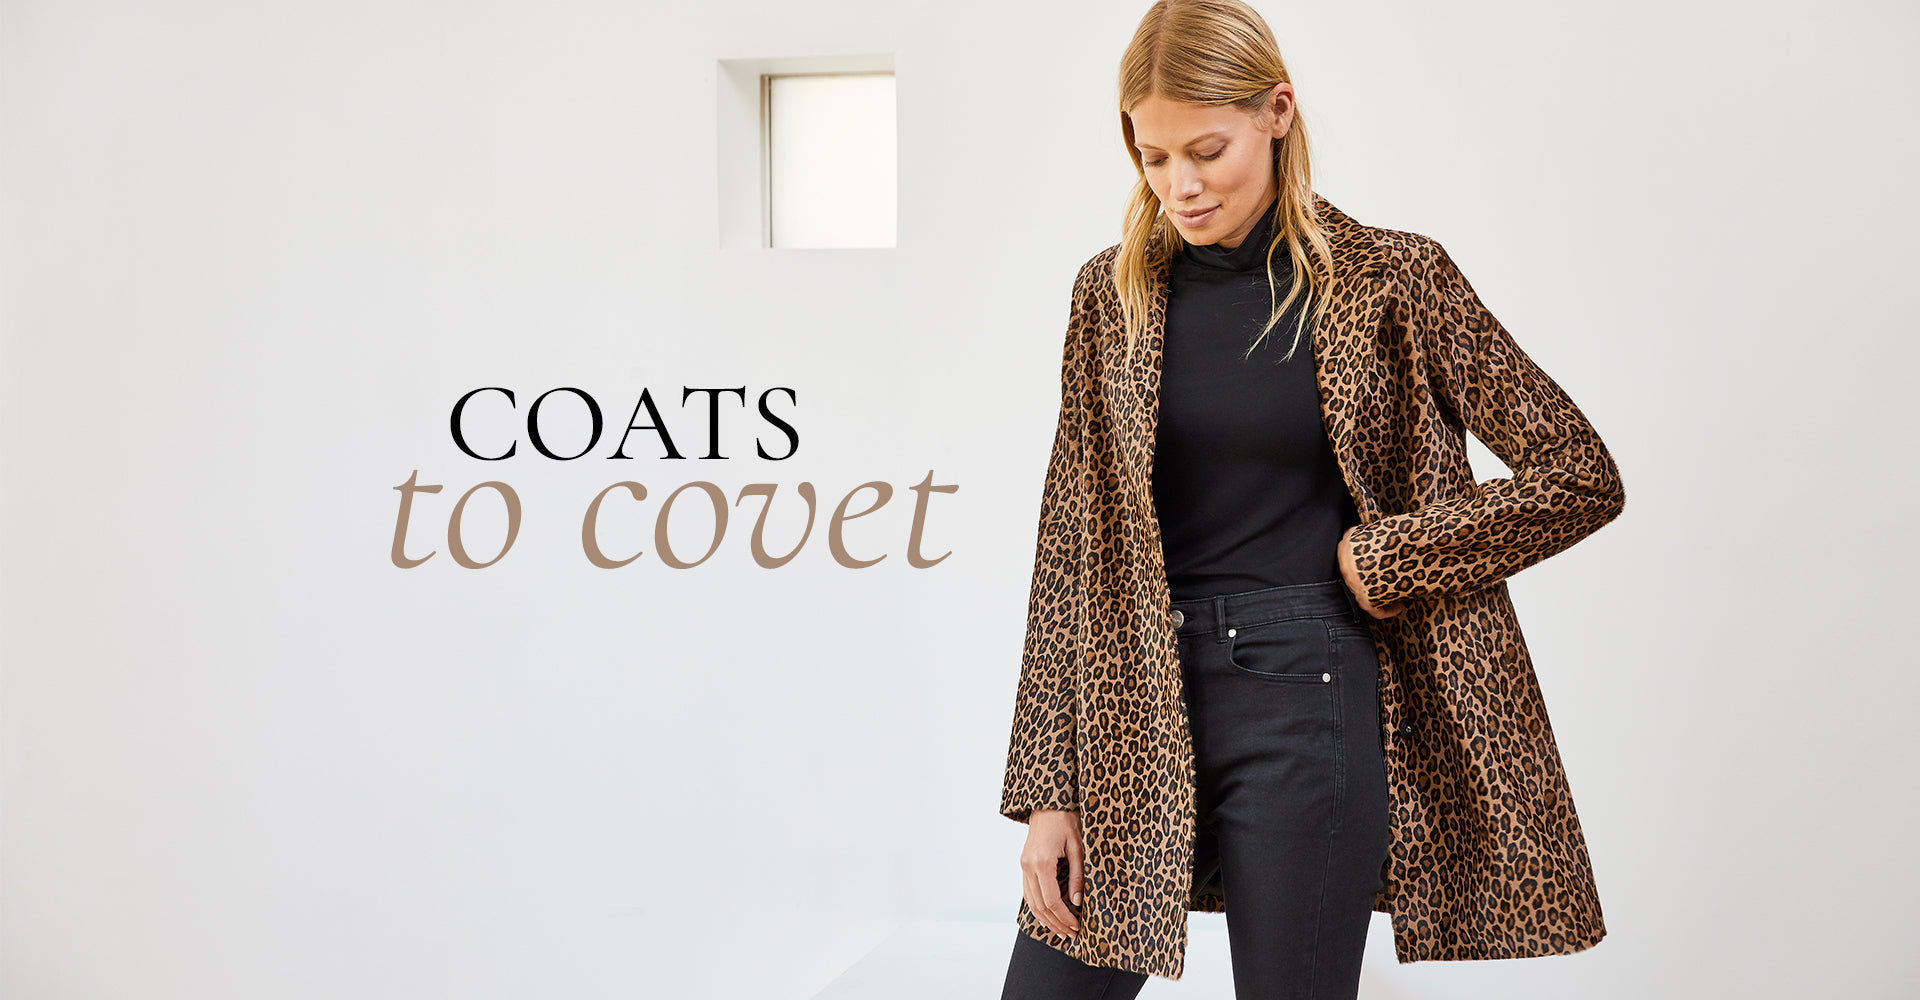 Coats to covet